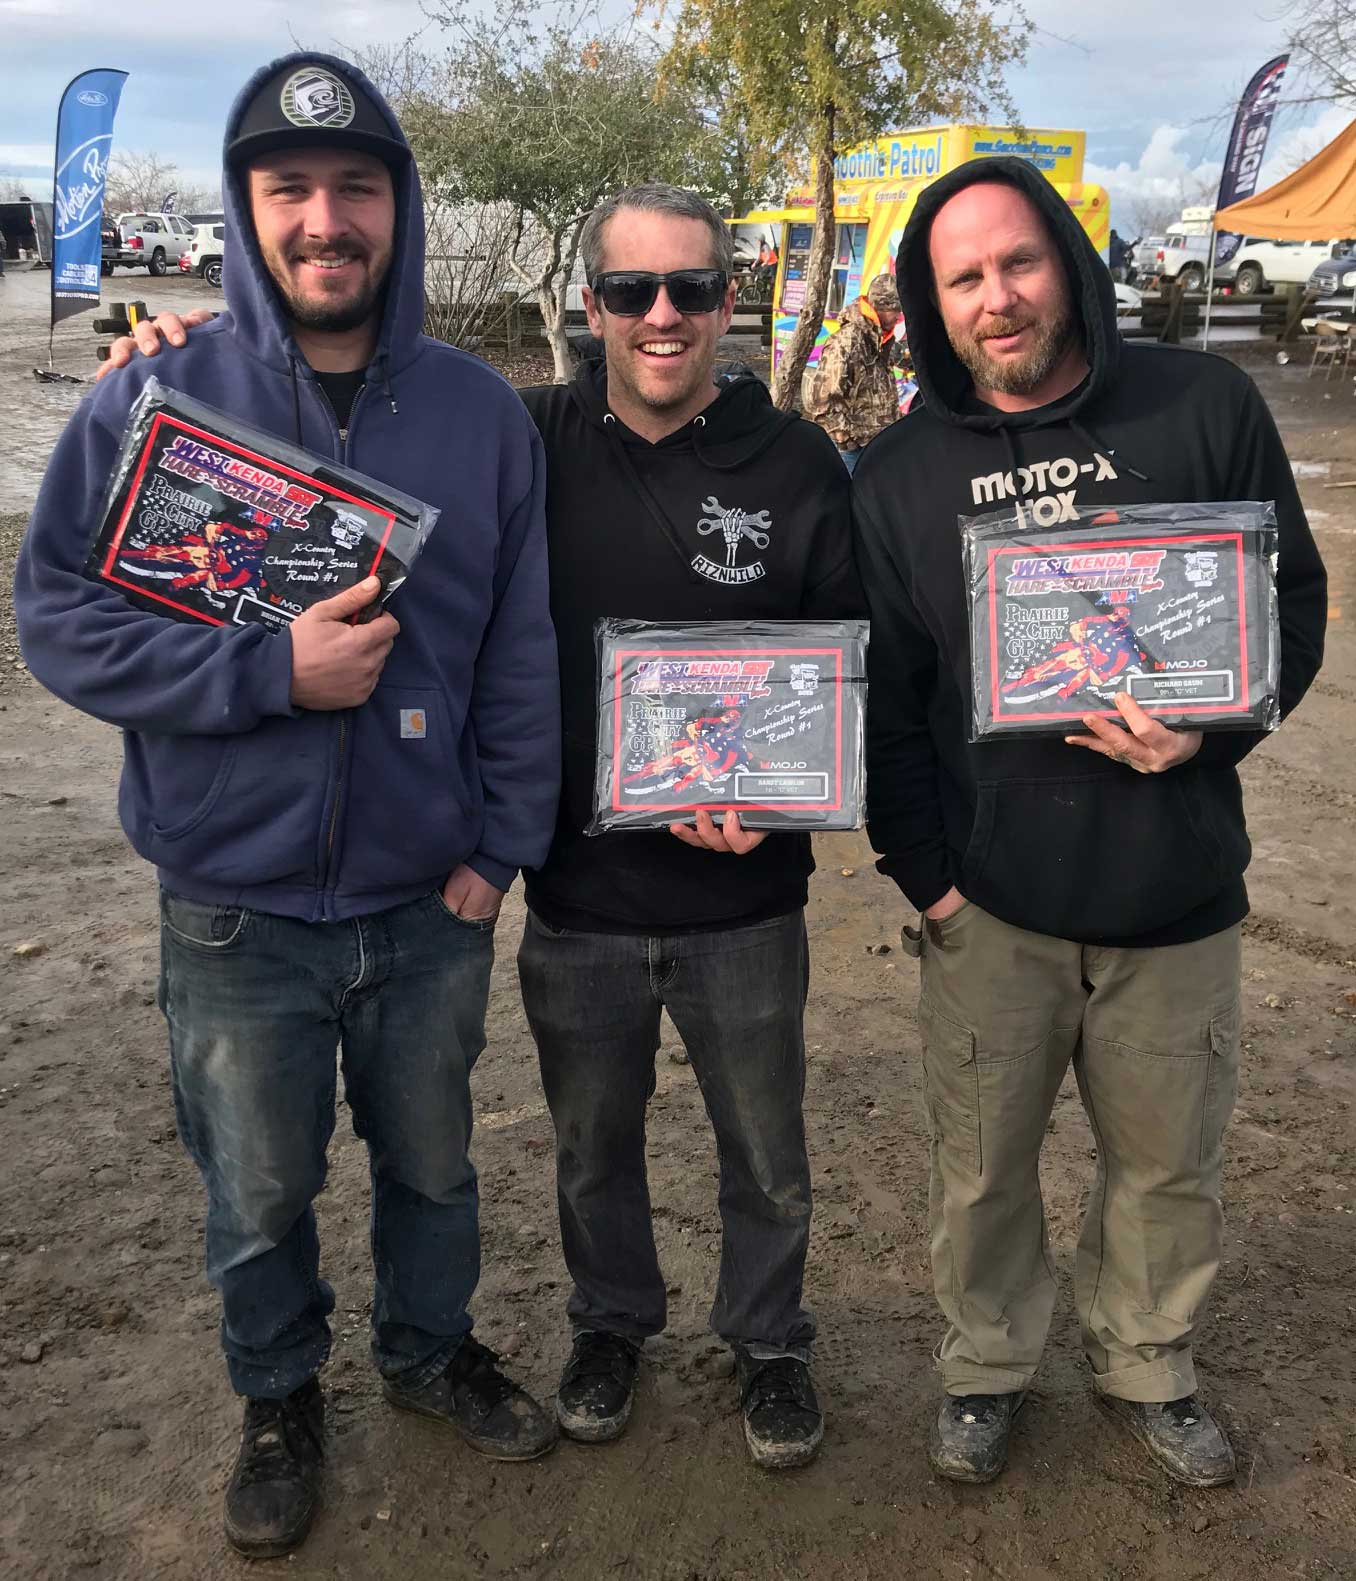 Riding Crew Trophy's in hand